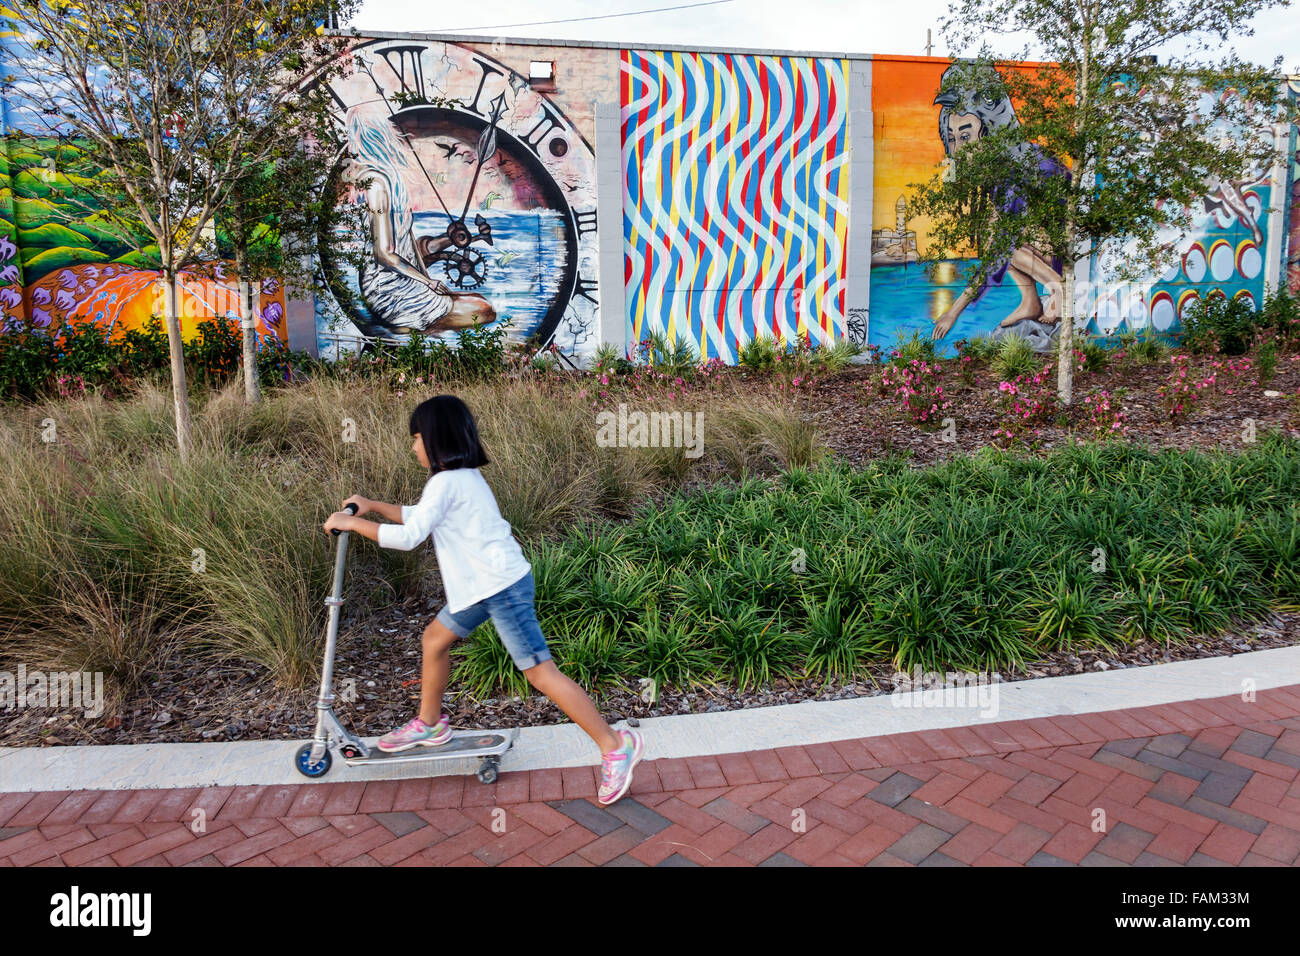 Gainesville Florida SW Depot Avenue wall mural art Asian girl riding scooter - Stock Image